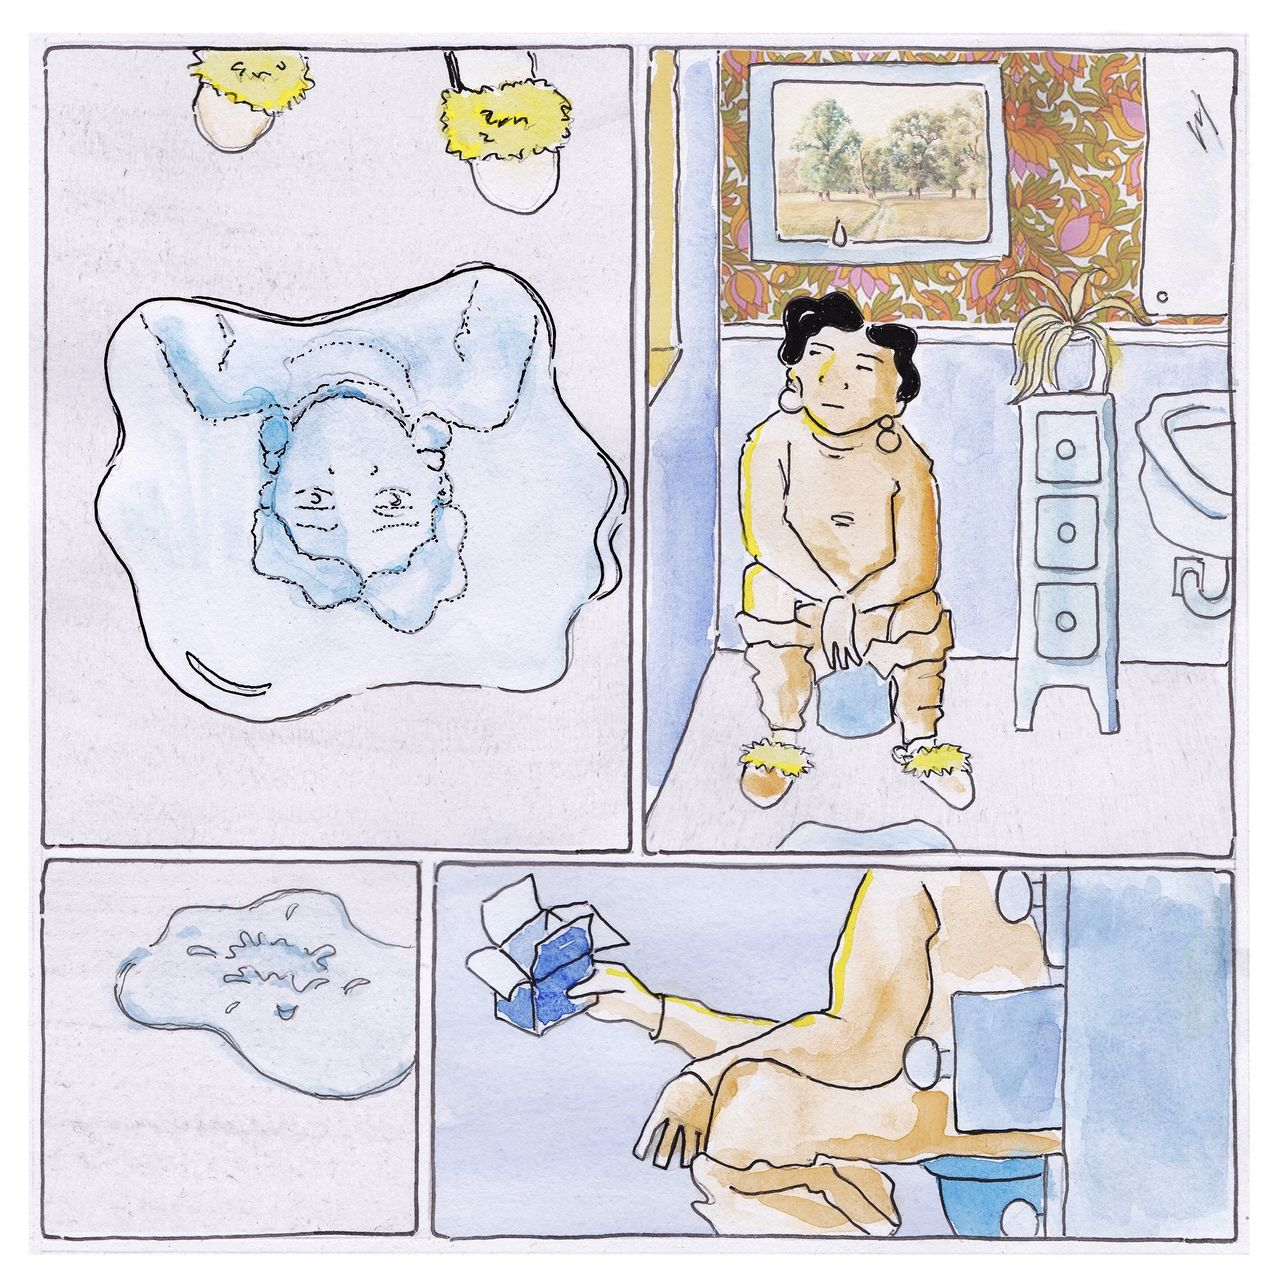 Webcomic in a watercolour and collage style. A woman sits on the toilet. There's a drip from the ceiling into a puddle on the floor. She picks up a box of tampons but its' empty.